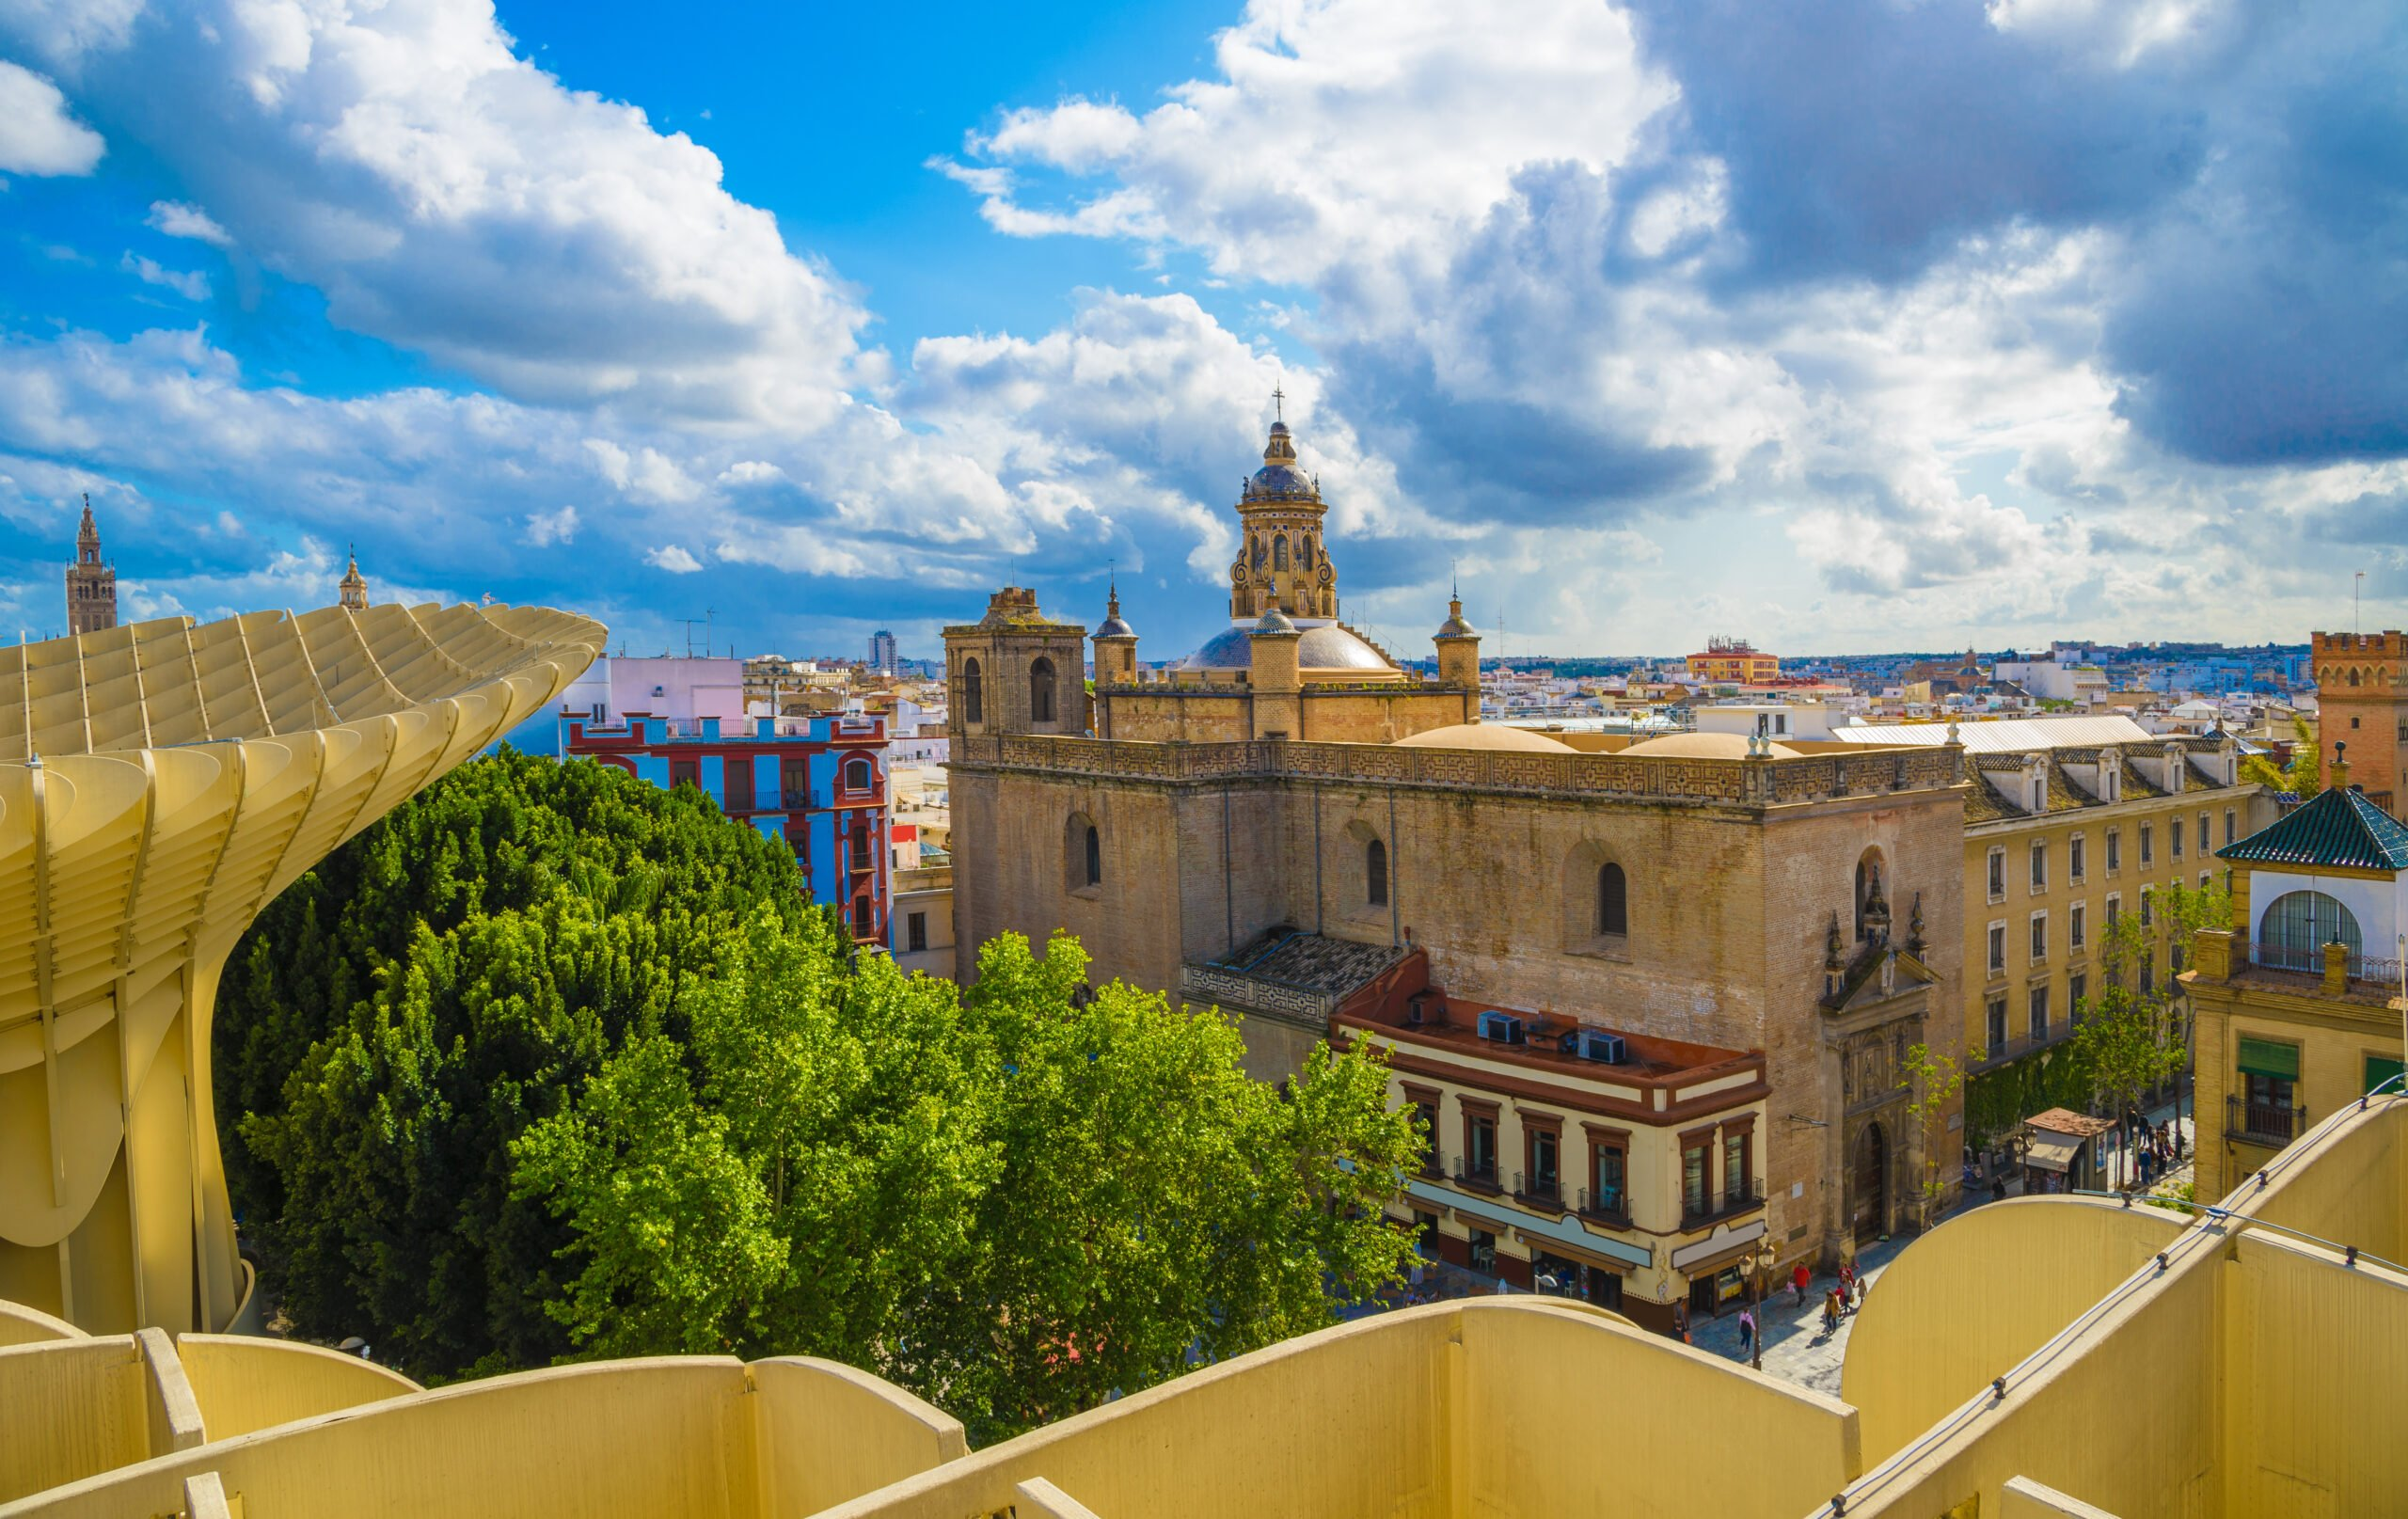 Enjoy The Views From The Mushroom On The Seville Rooftop Walking Tour